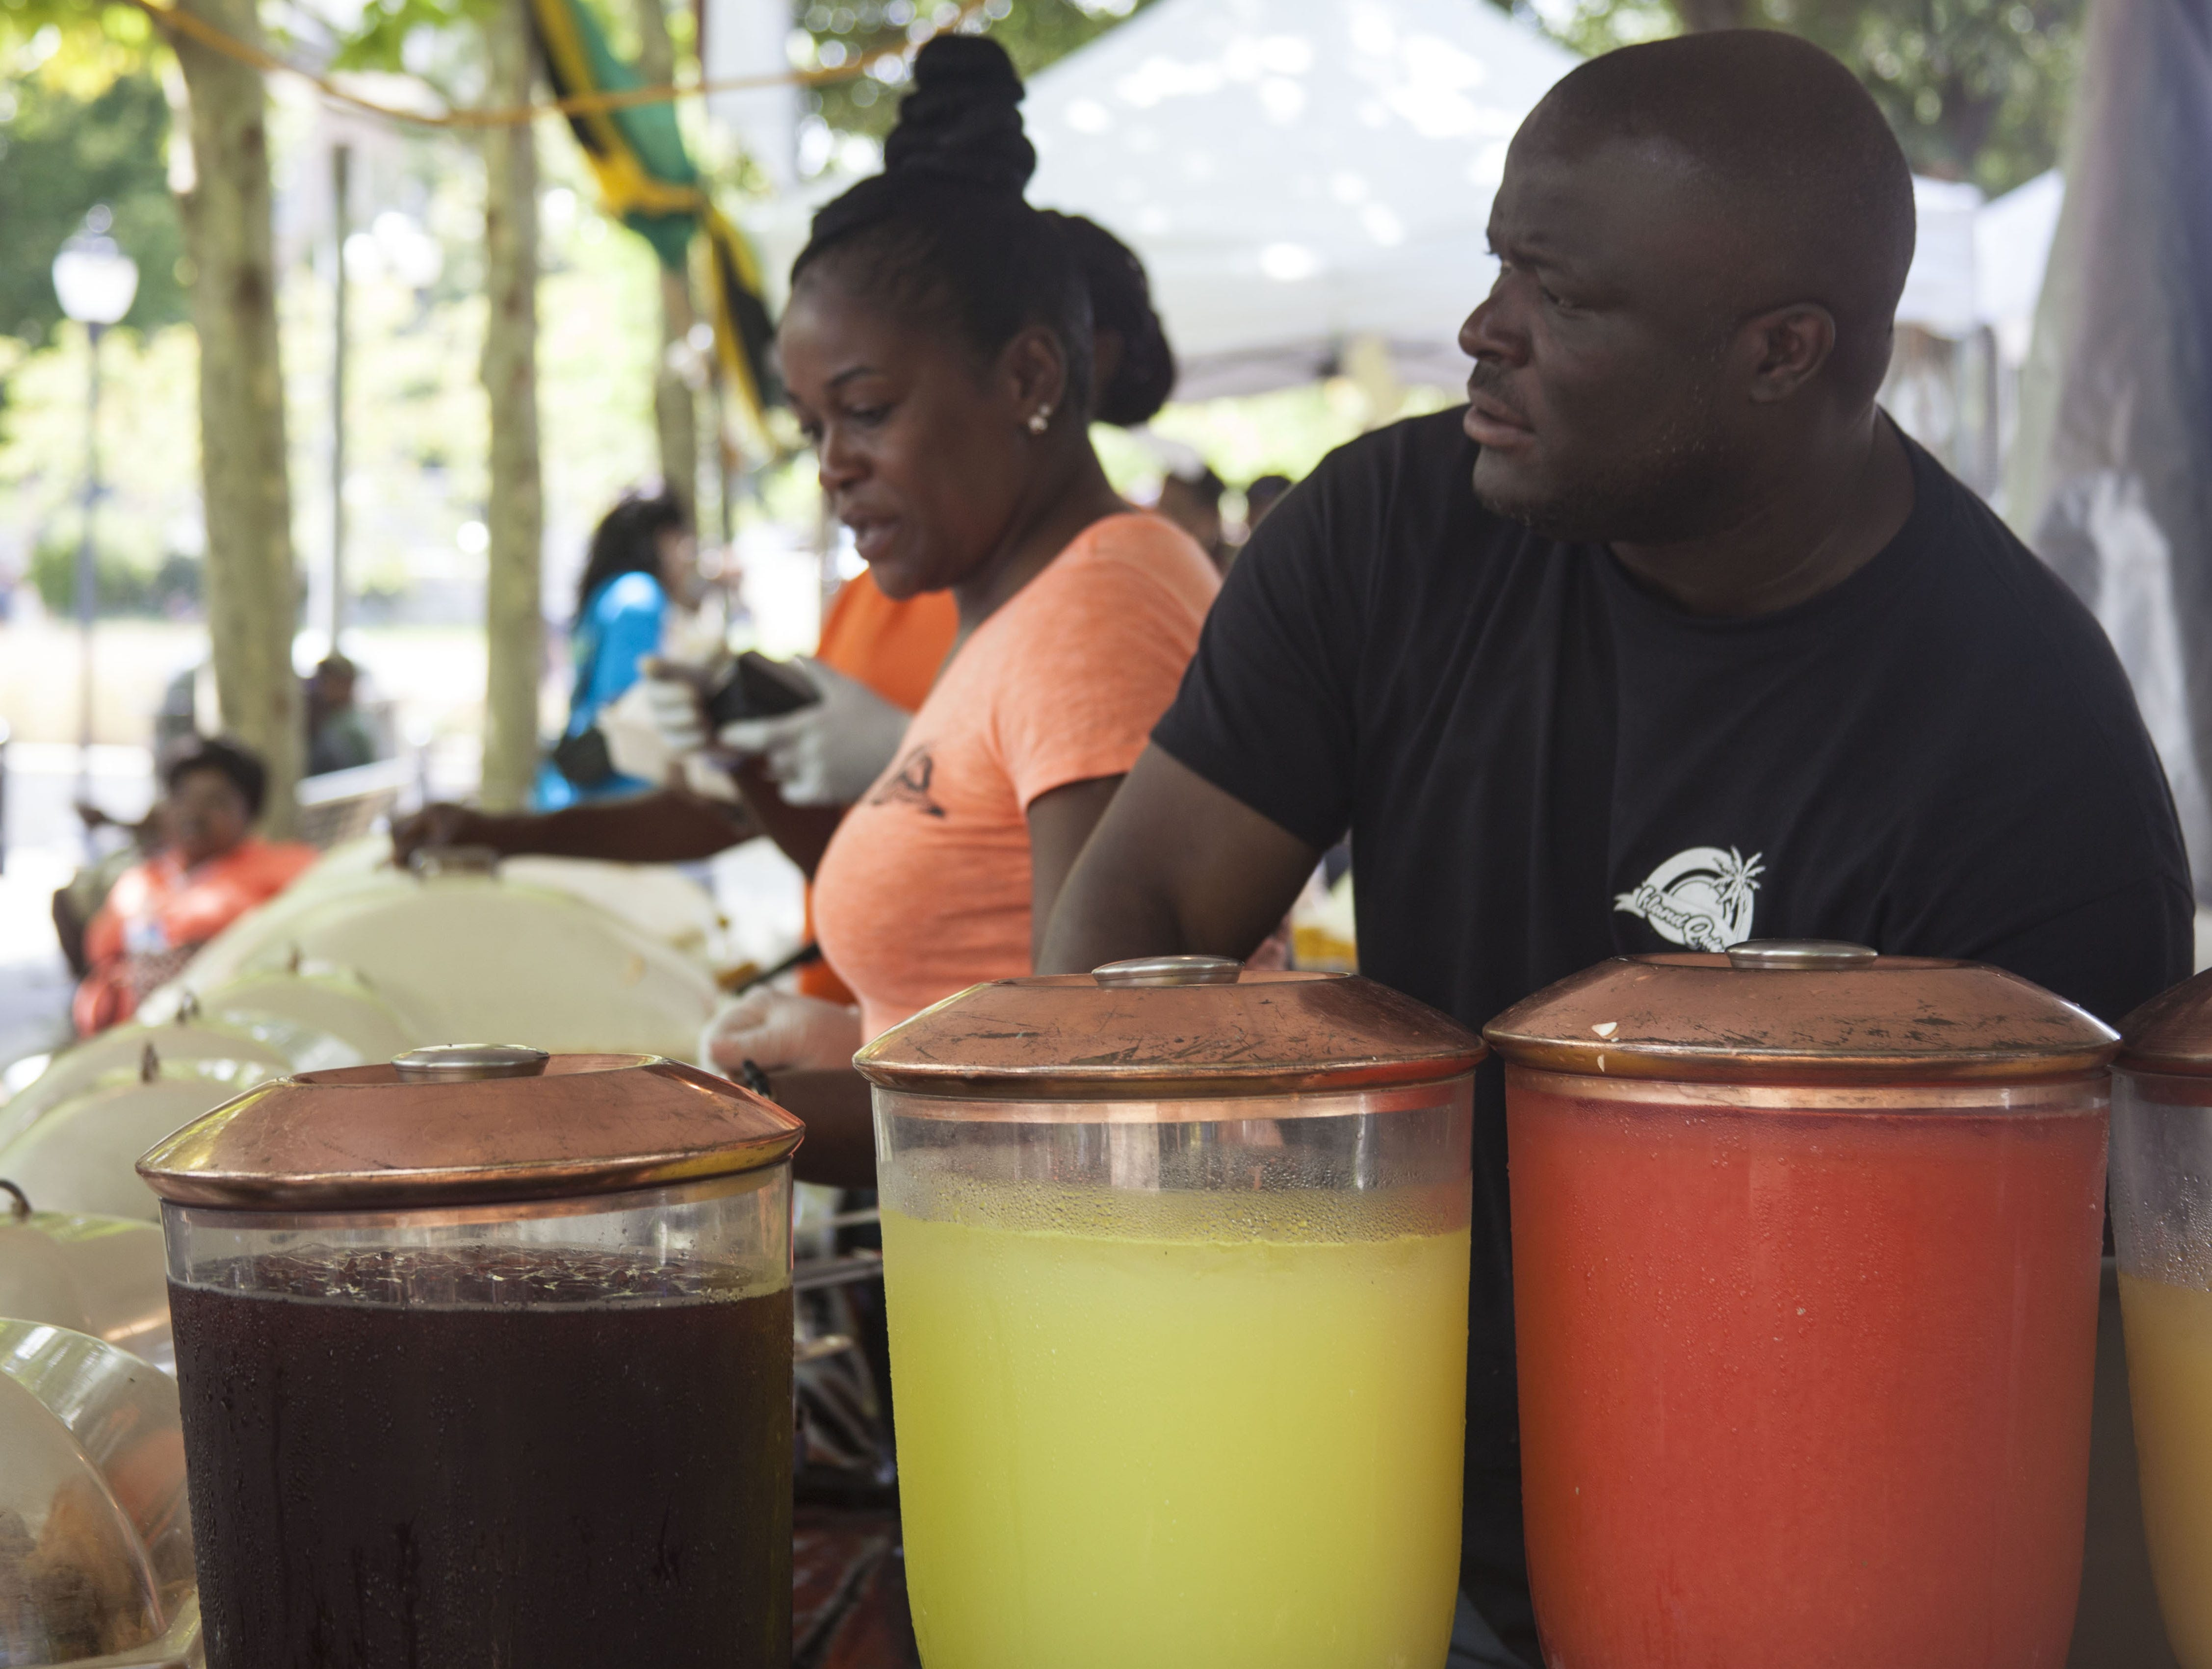 Camille and Donovan Murphy of Island Quizine serves Jamaican fare to attendees of the 2018 Goombay Festival at the Roger McGuire Green in Pack Square Park on Sept. 8, 2018.